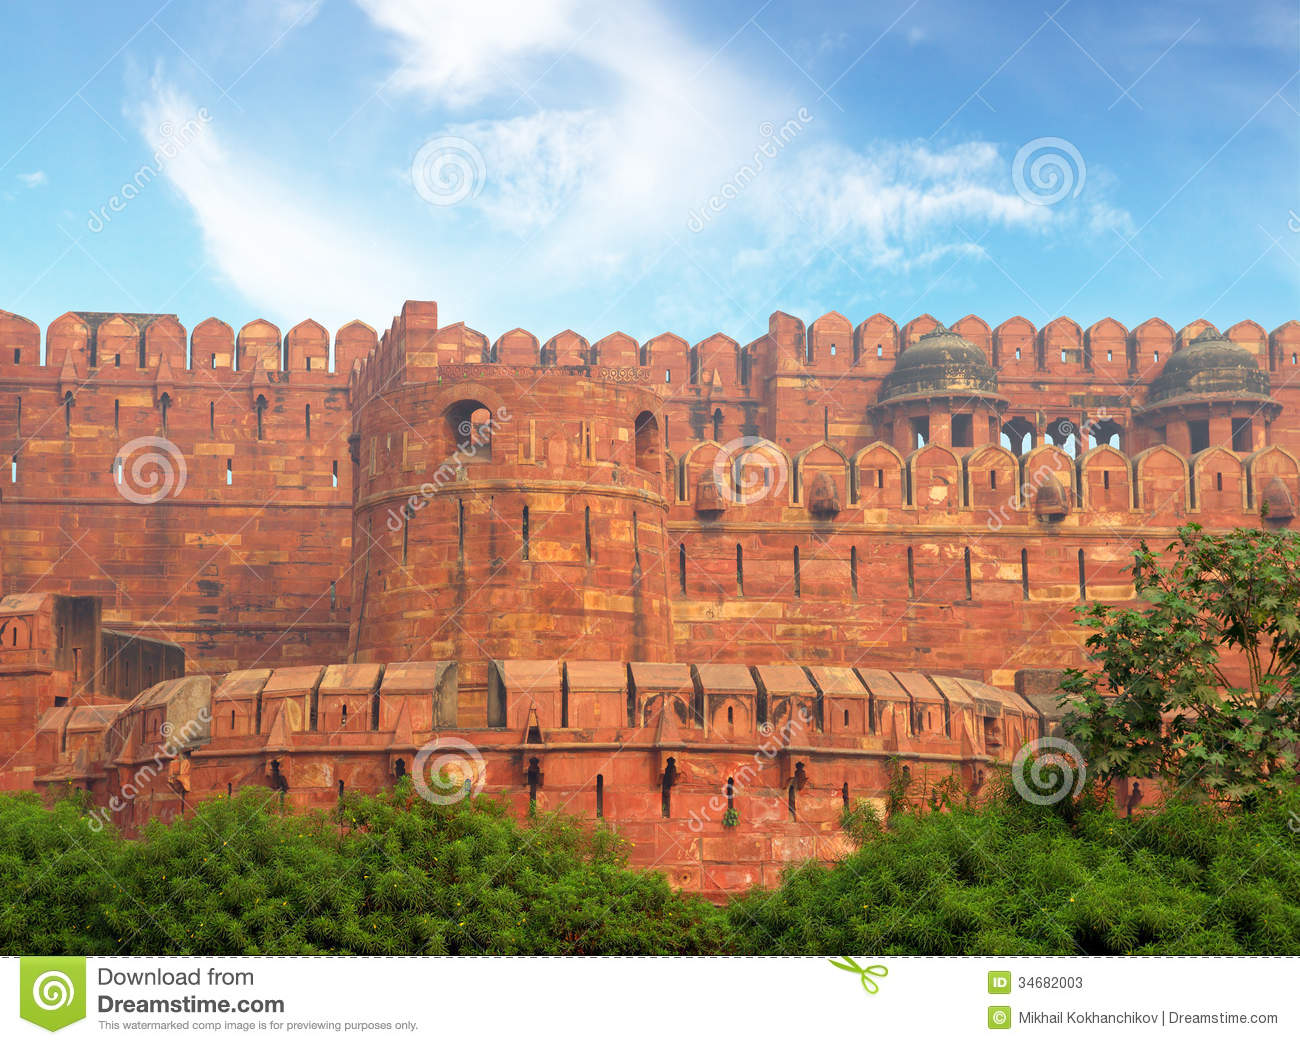 Modular Desert Ruins as well 1498819 Open World Rpg W I P Oddworlds Medieval Map moreover Stock Photos Red Fort Wall Agra India Image34682003 moreover Royalty Free Stock Photos Egyptian Hieroglyphics Background Over White Image37764988 moreover Watch. on ruins texture